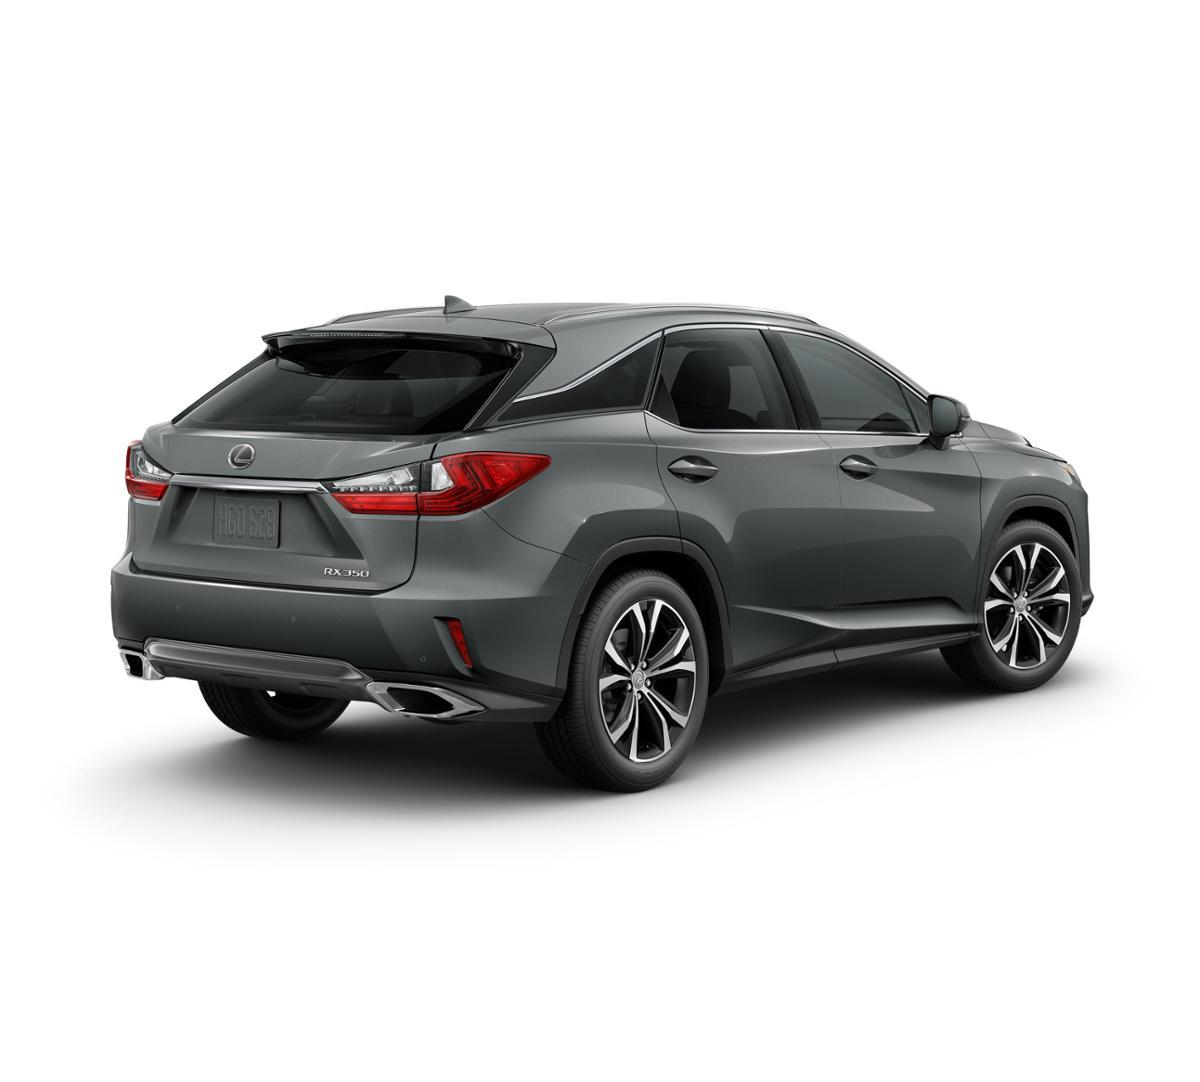 Dallas New 2018 Lexus RX 350 Nebula Gray Pearl: Suv For